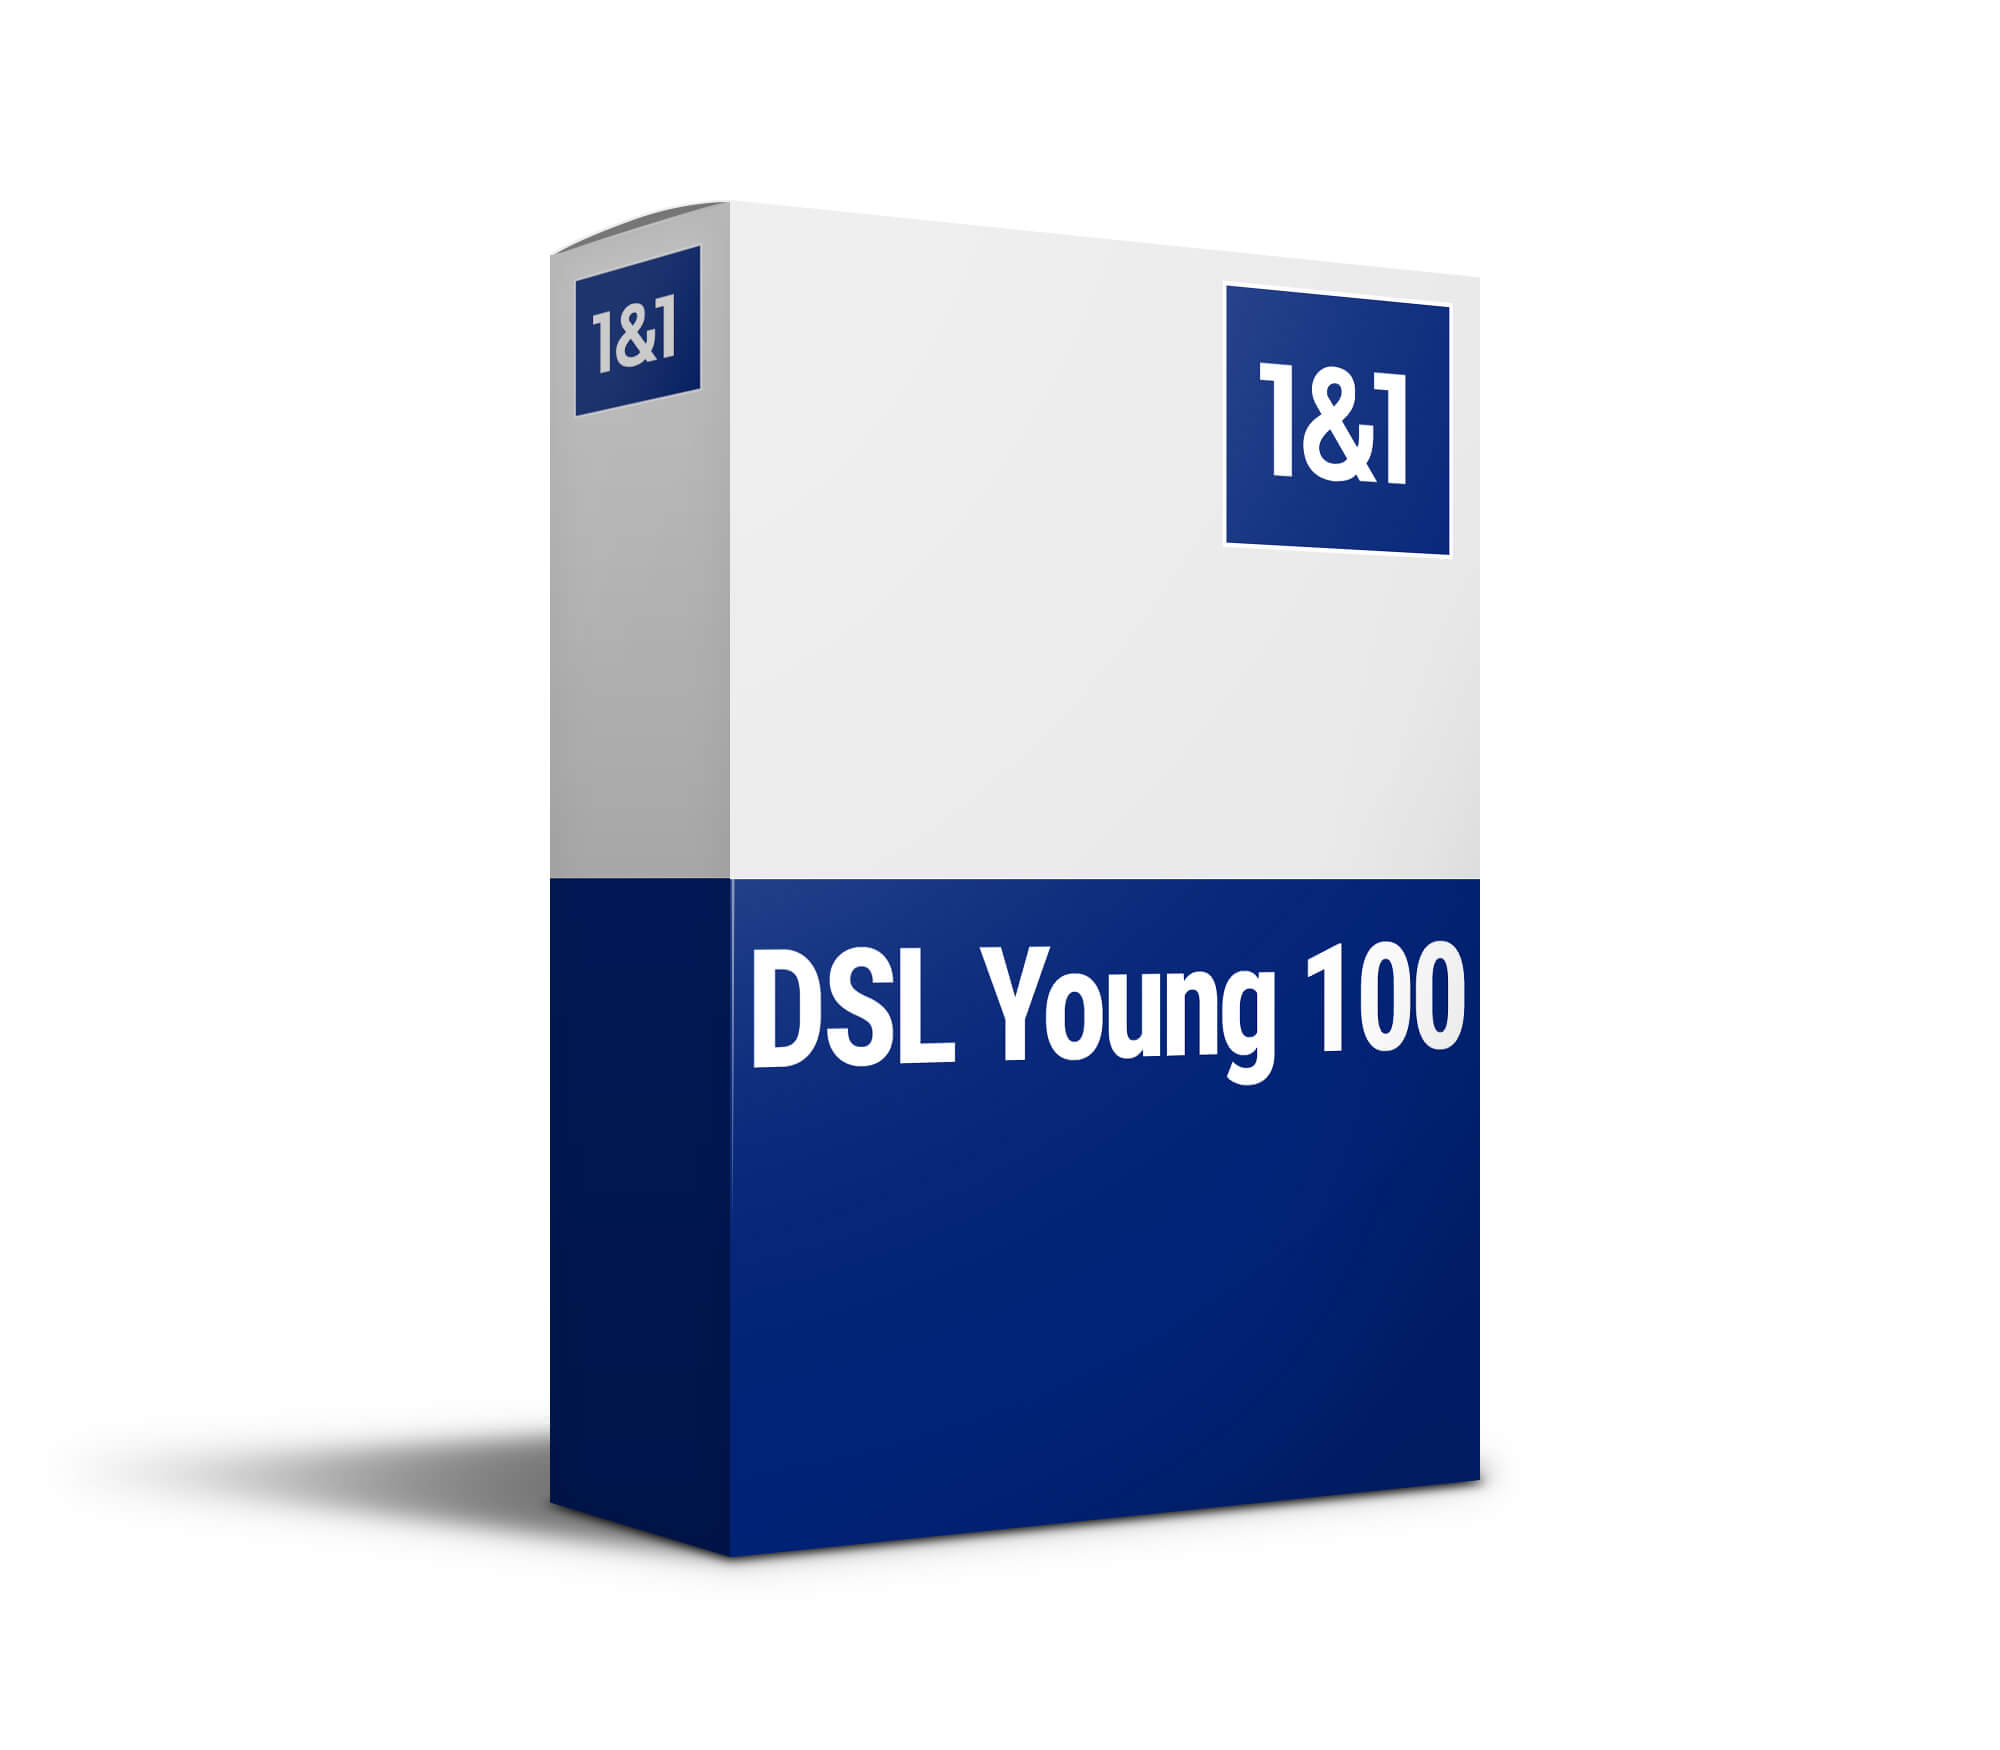 DSL Young 100